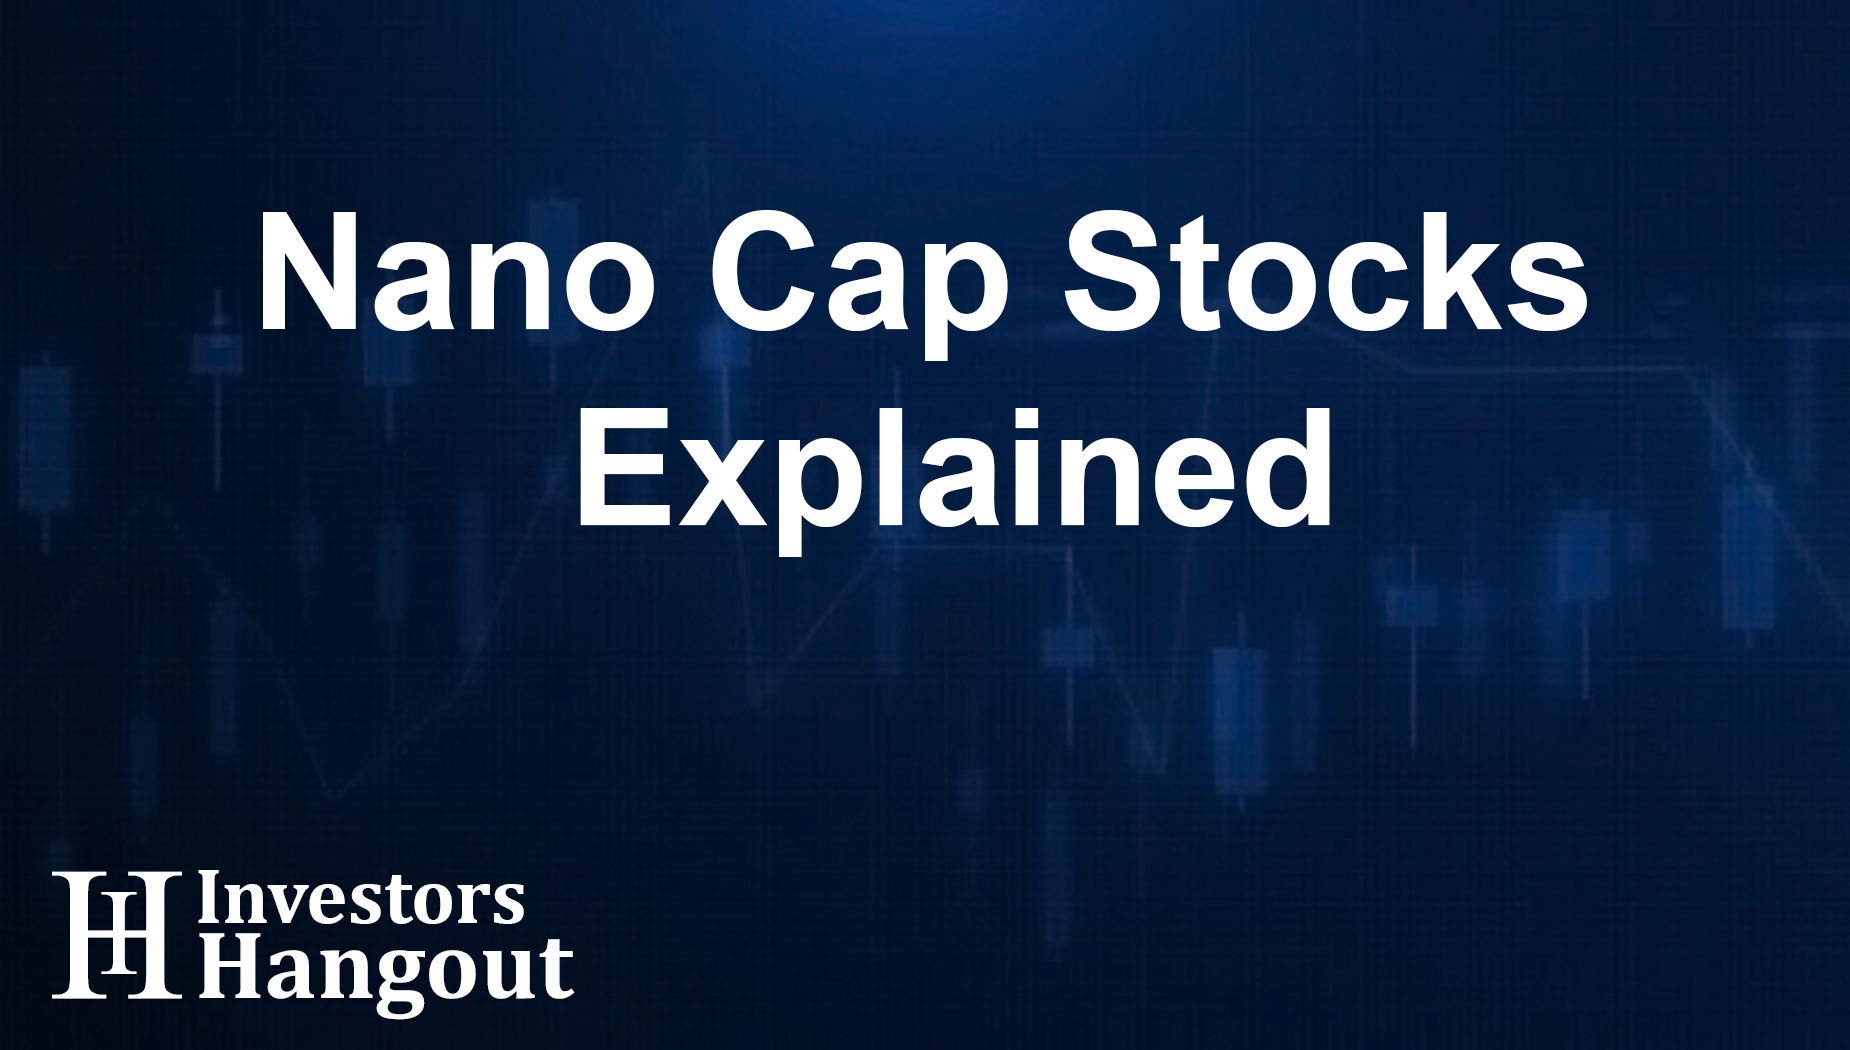 Nano Cap Stocks Explained